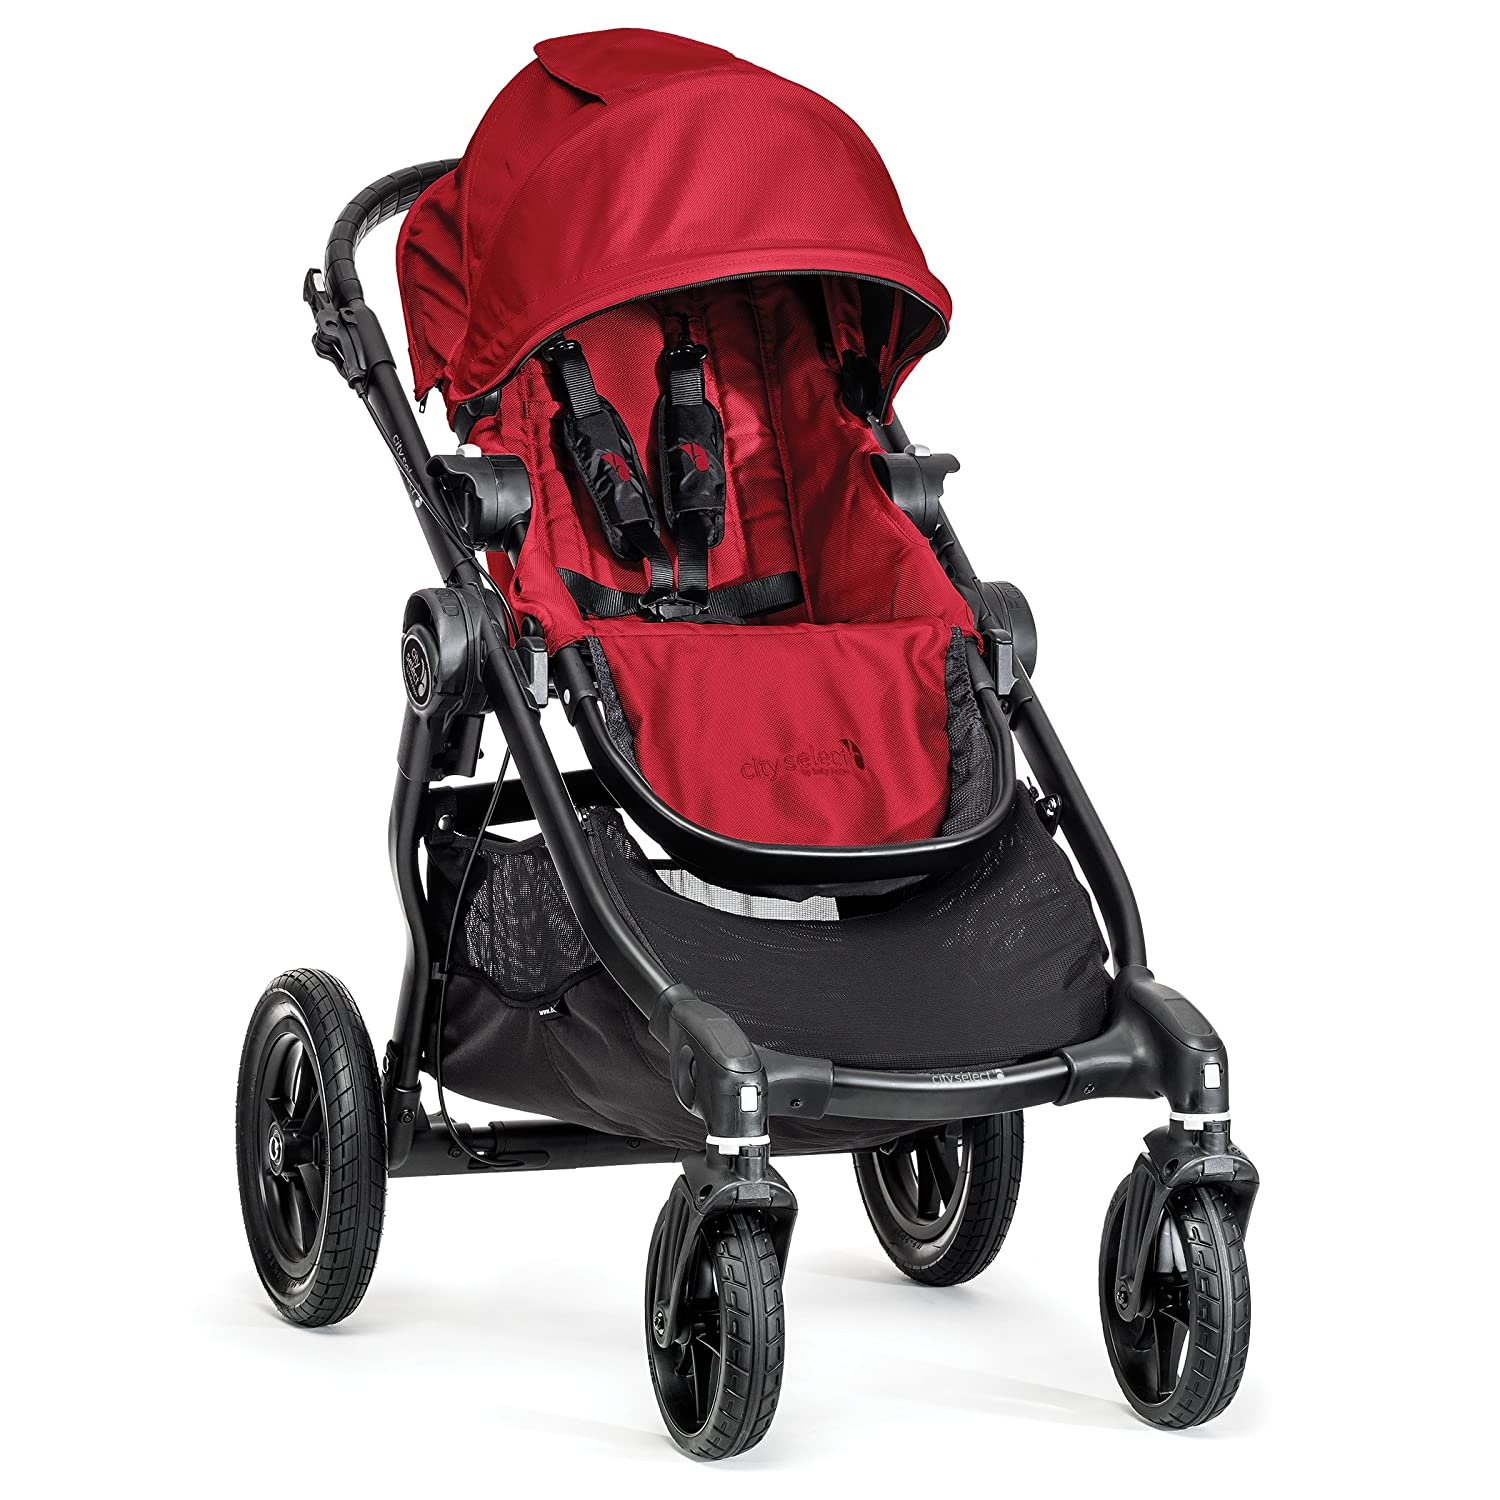 Baby Jogger Select Stroller